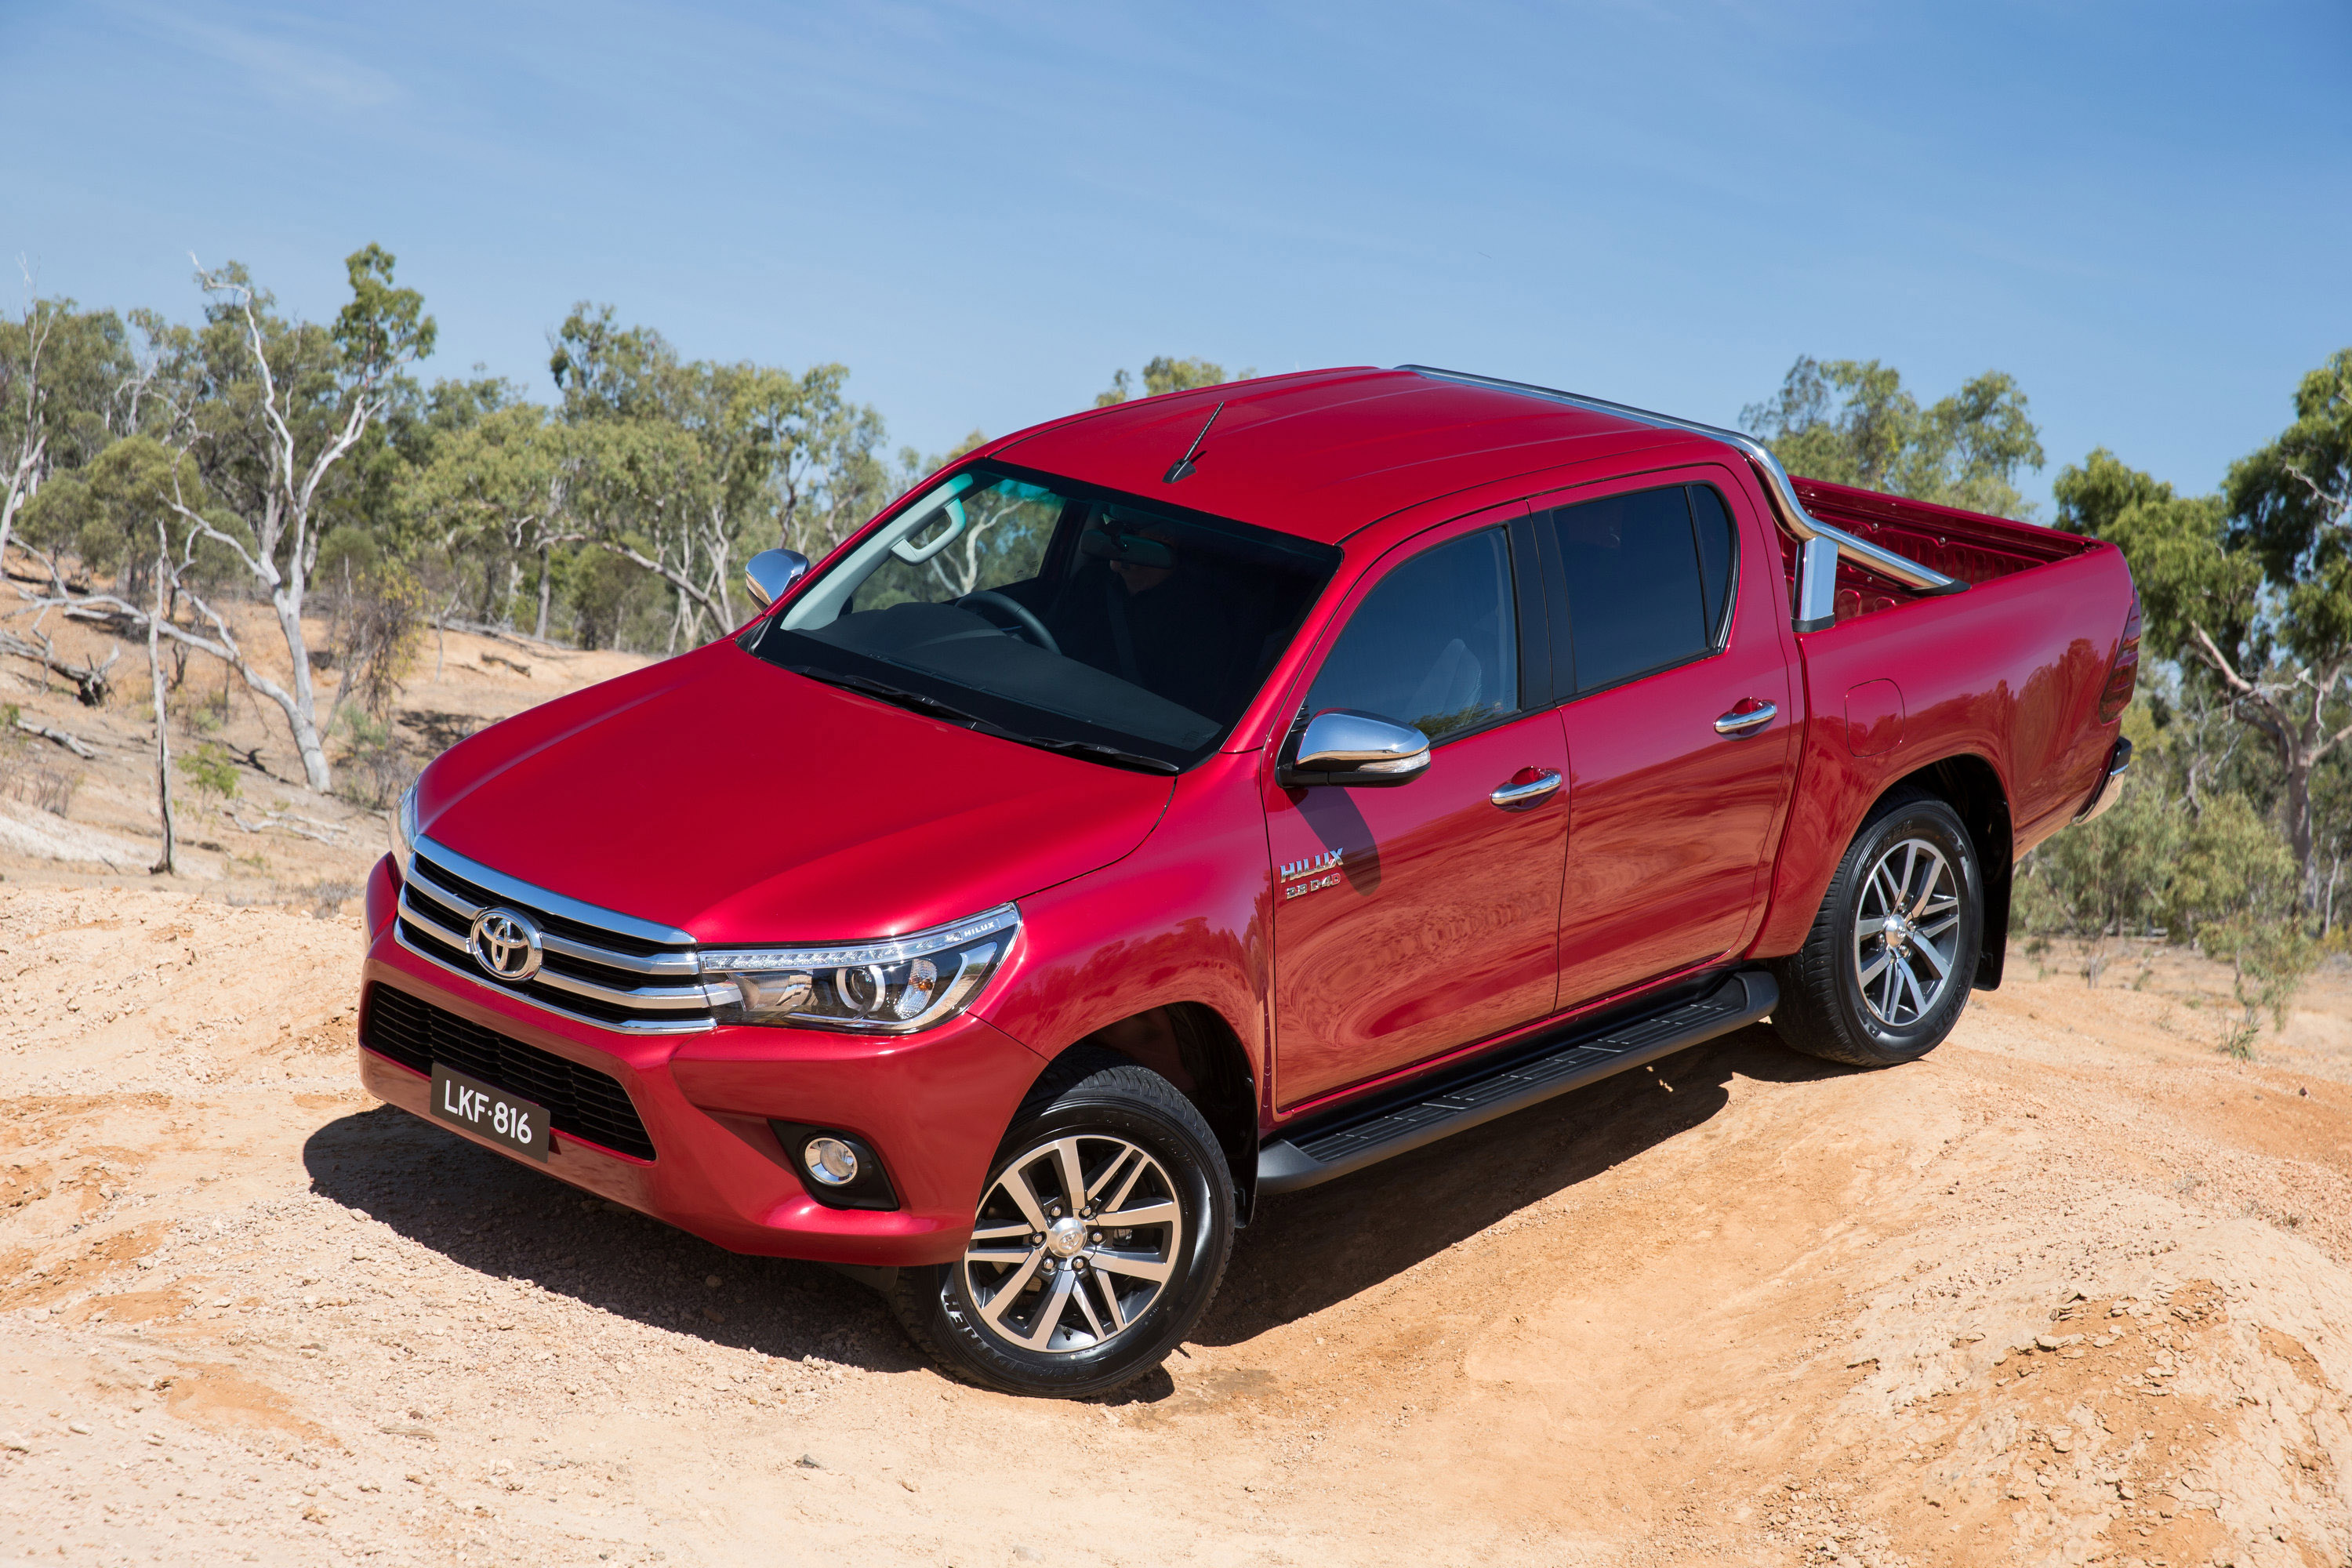 Review - 2016 Toyota HiLux SR5 - Full Review